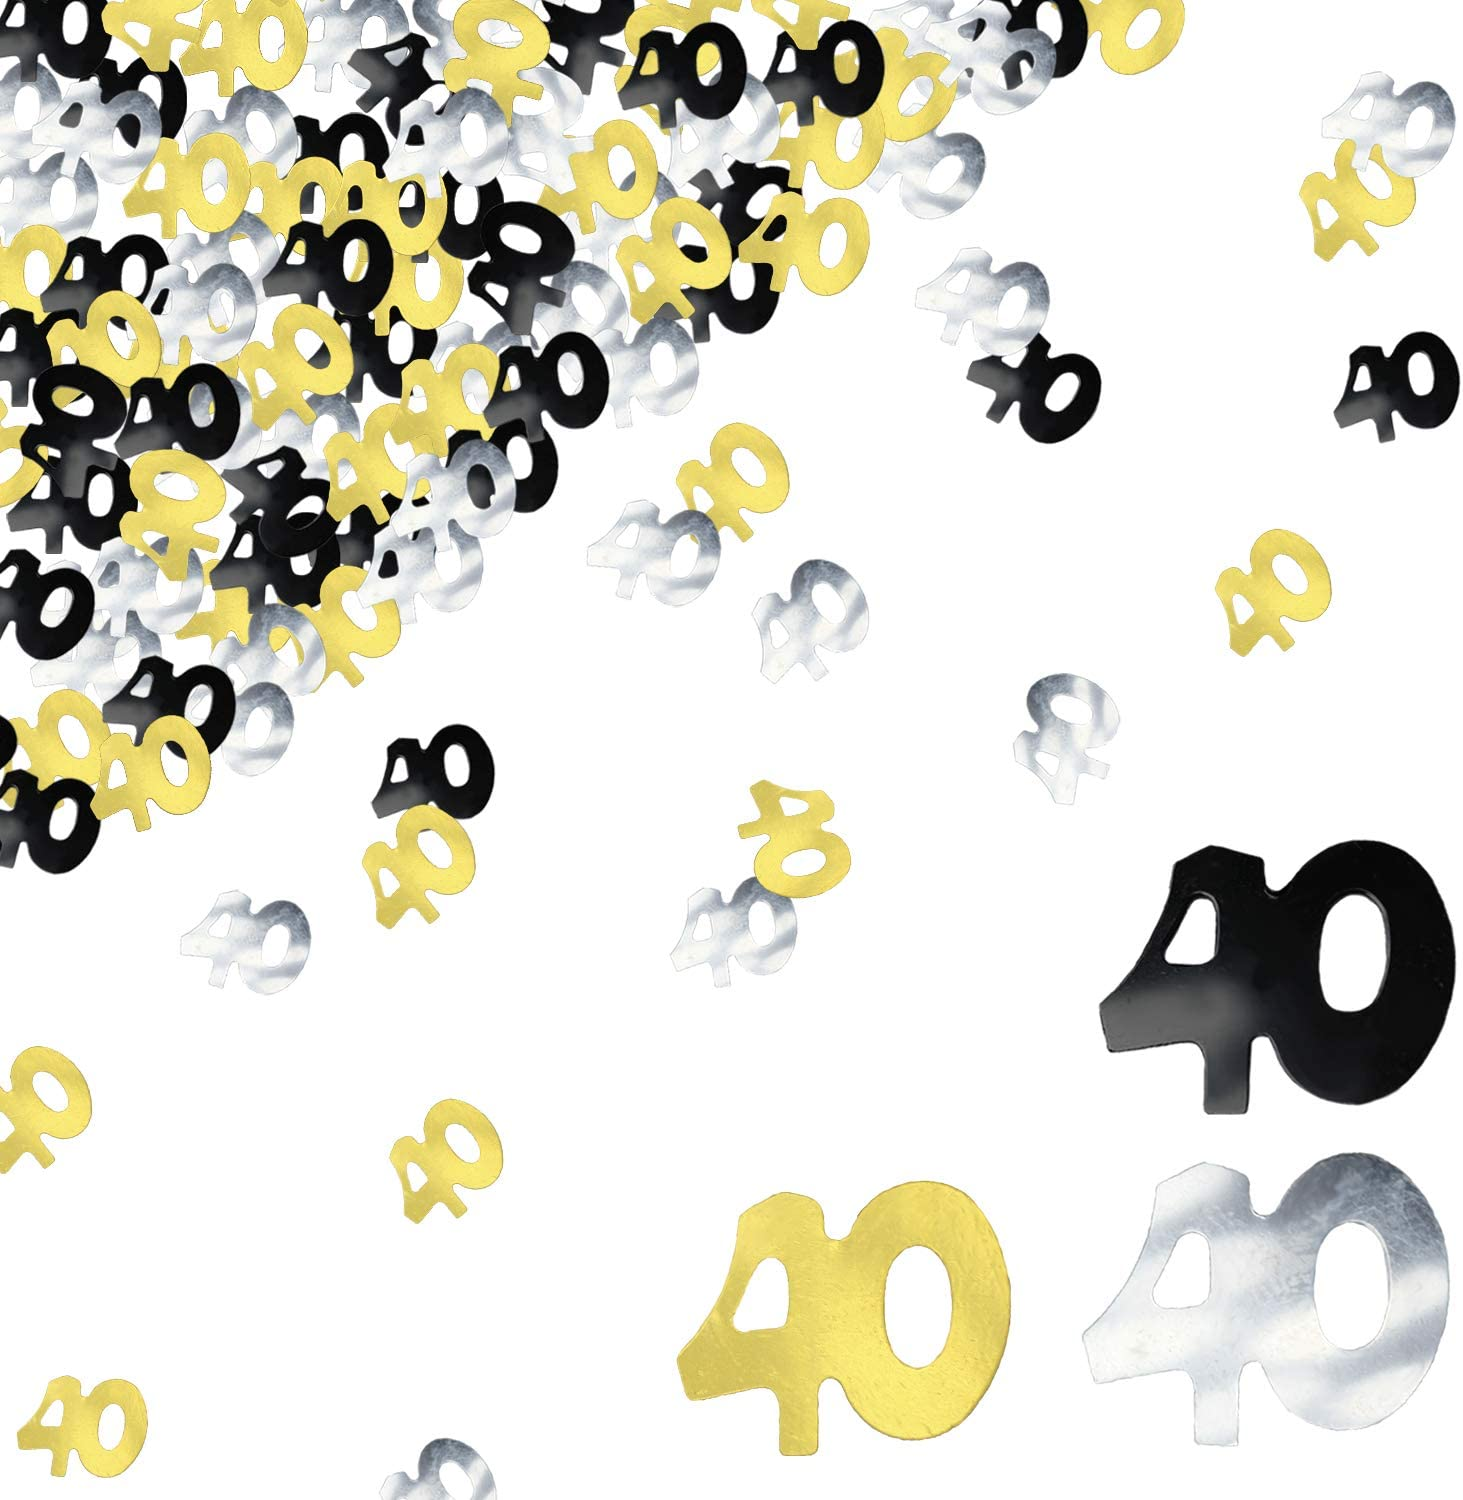 BEADNOVA 40th Birthday Confetti Forty Years Old Confetti 40 Anniversary Number Confetti for Birthday Party Decor Wedding Table Decoration (1oz, Gold Silver Black Mix)